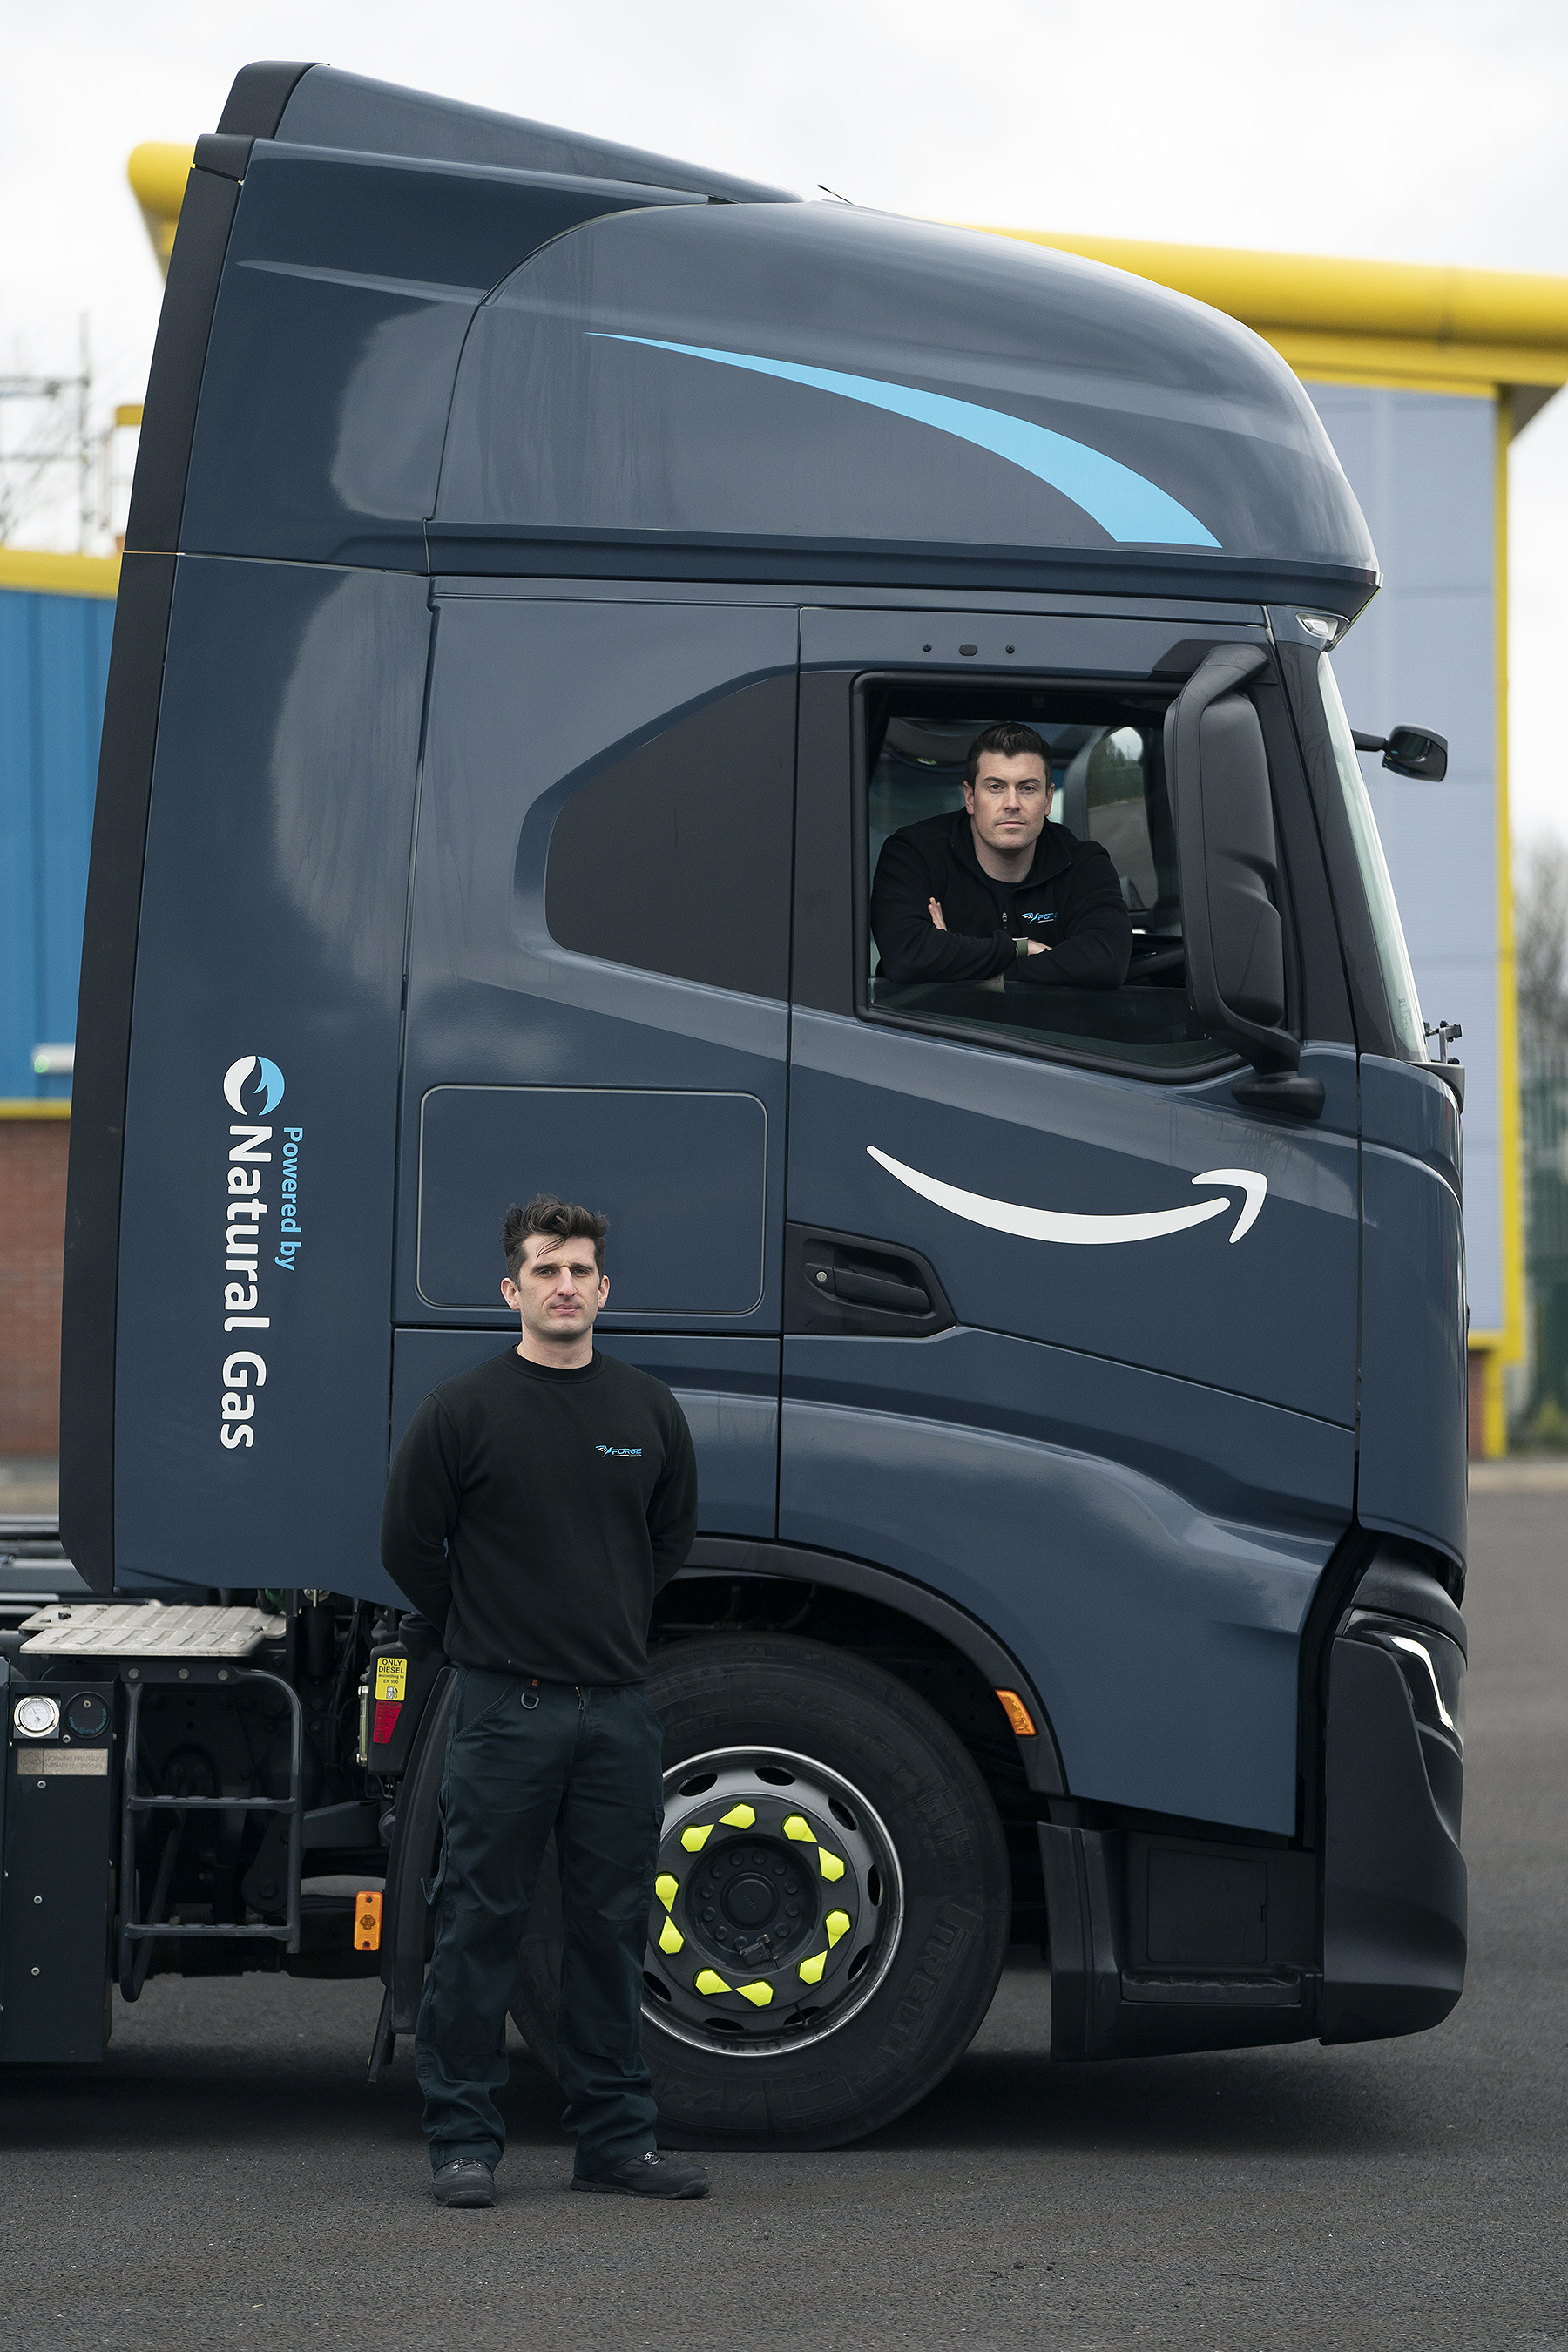 Former Military joins Amazon Delivery Service Partner Program